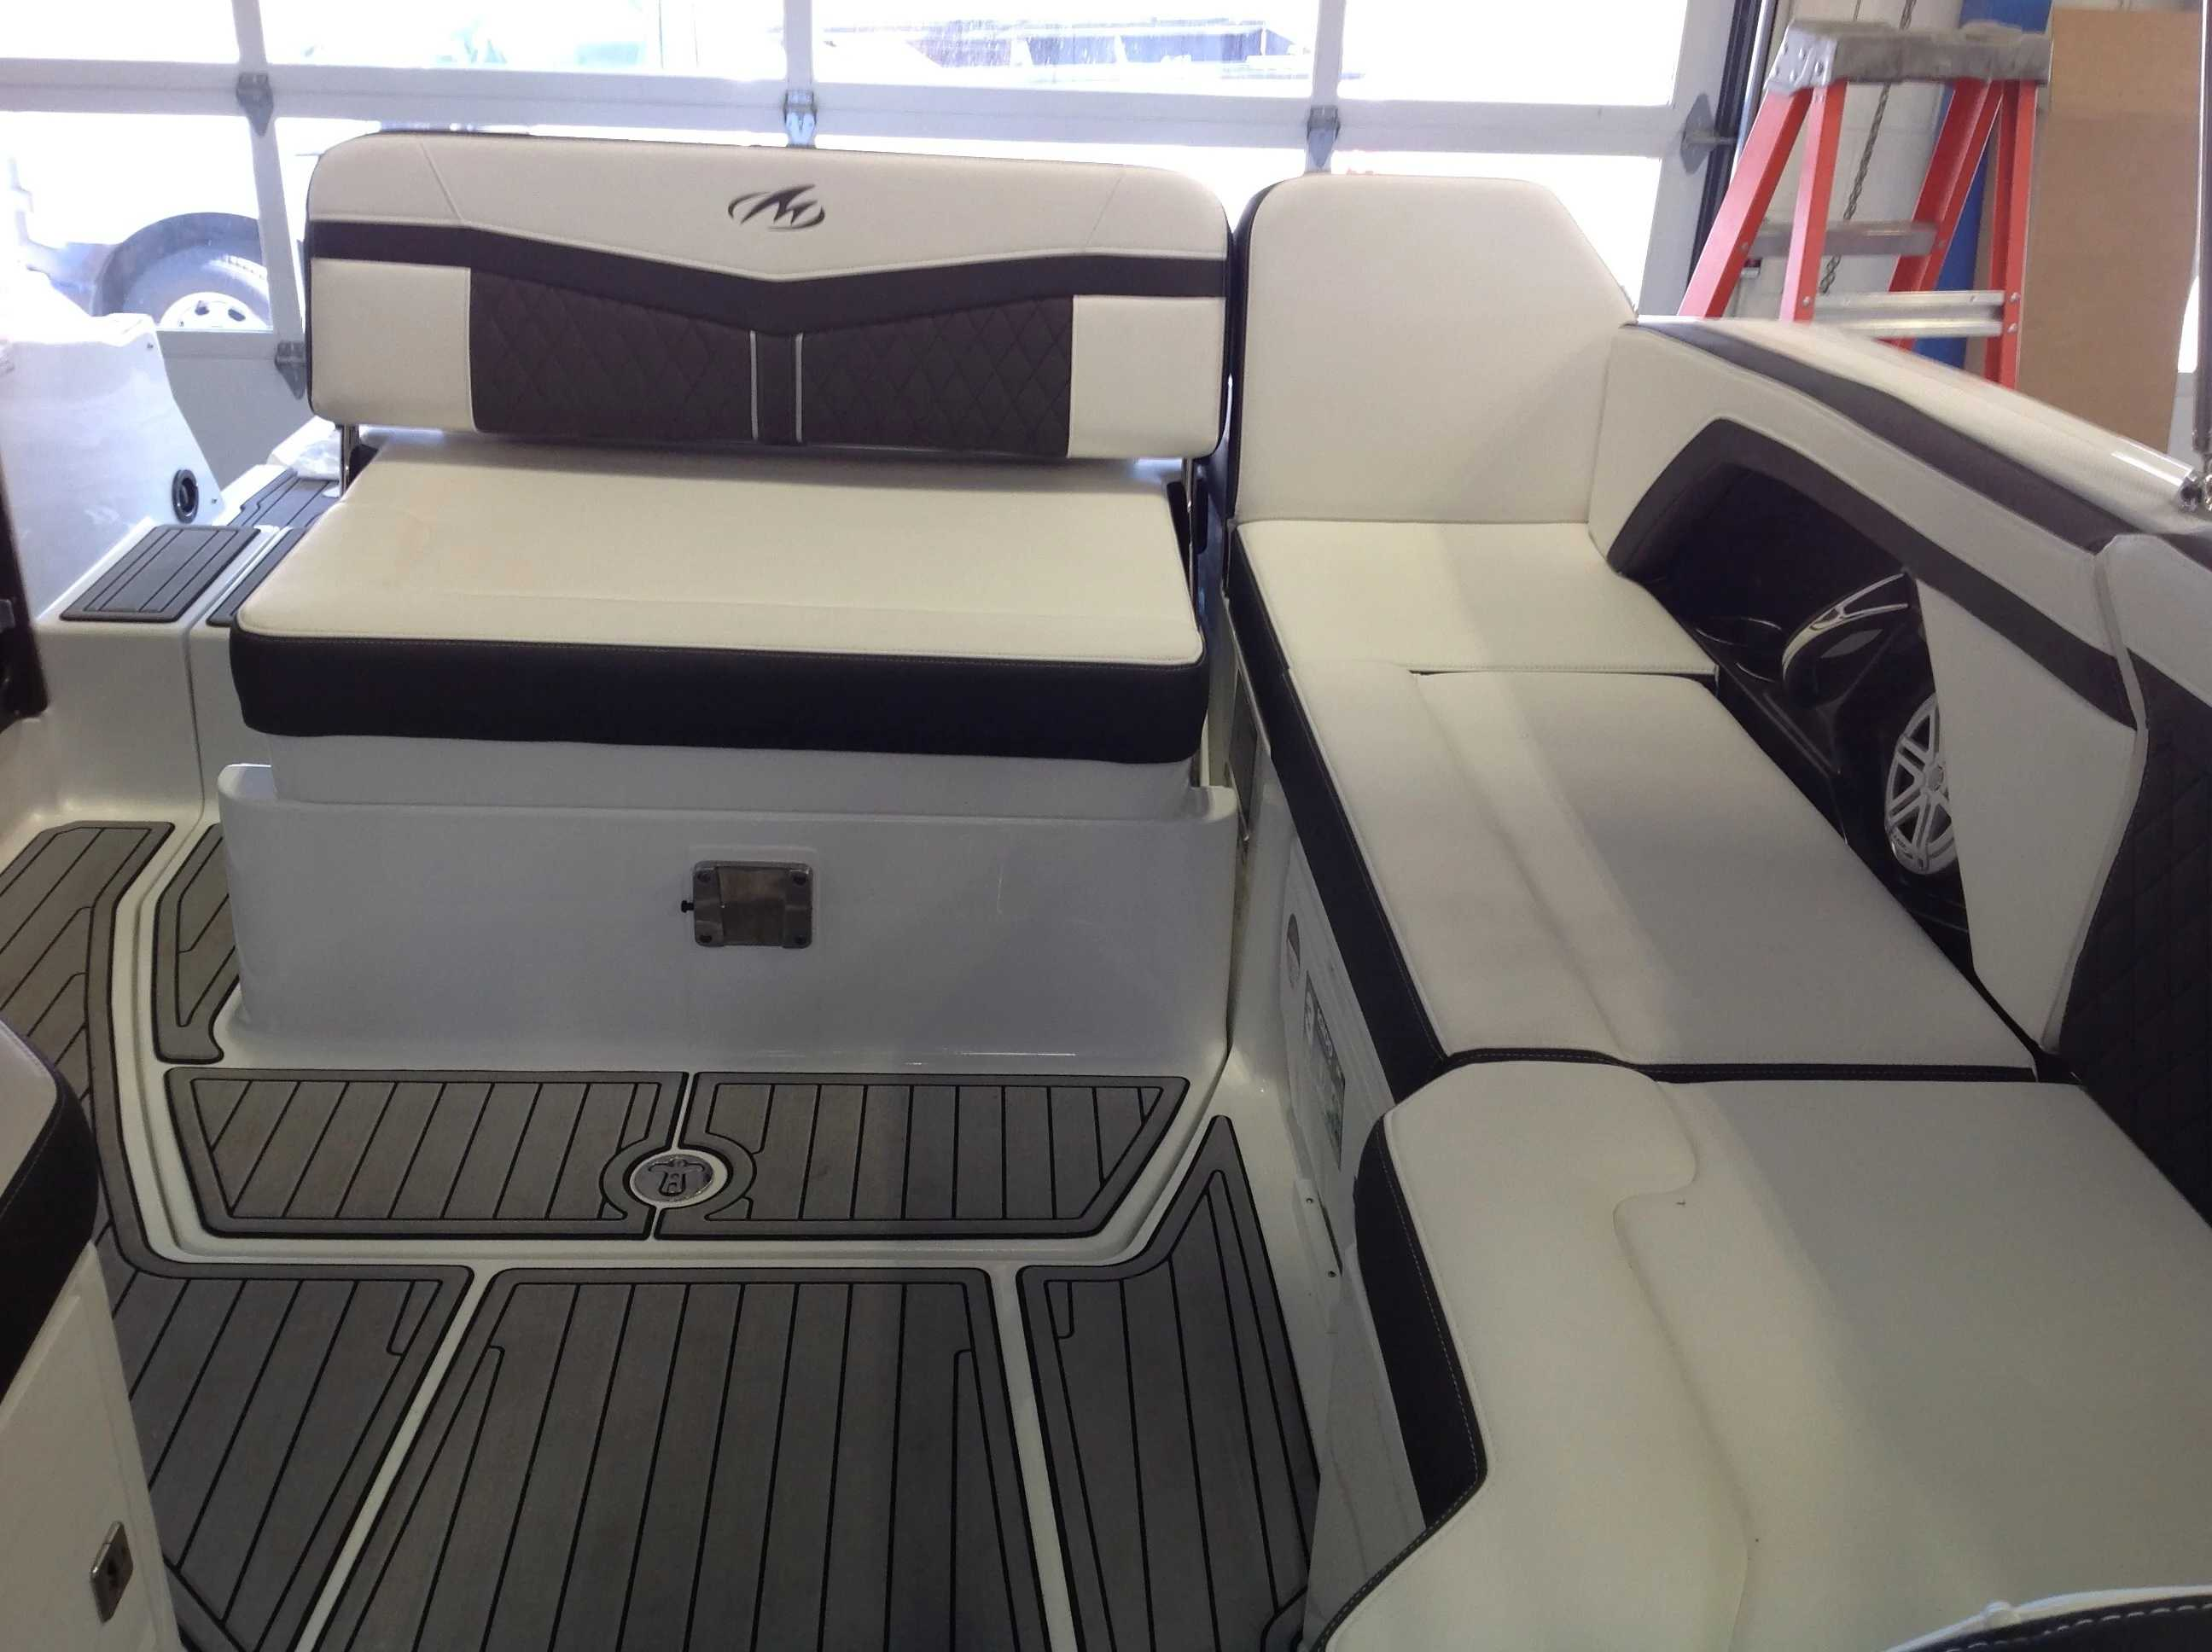 2022 Monterey boat for sale, model of the boat is 258SS & Image # 10 of 18